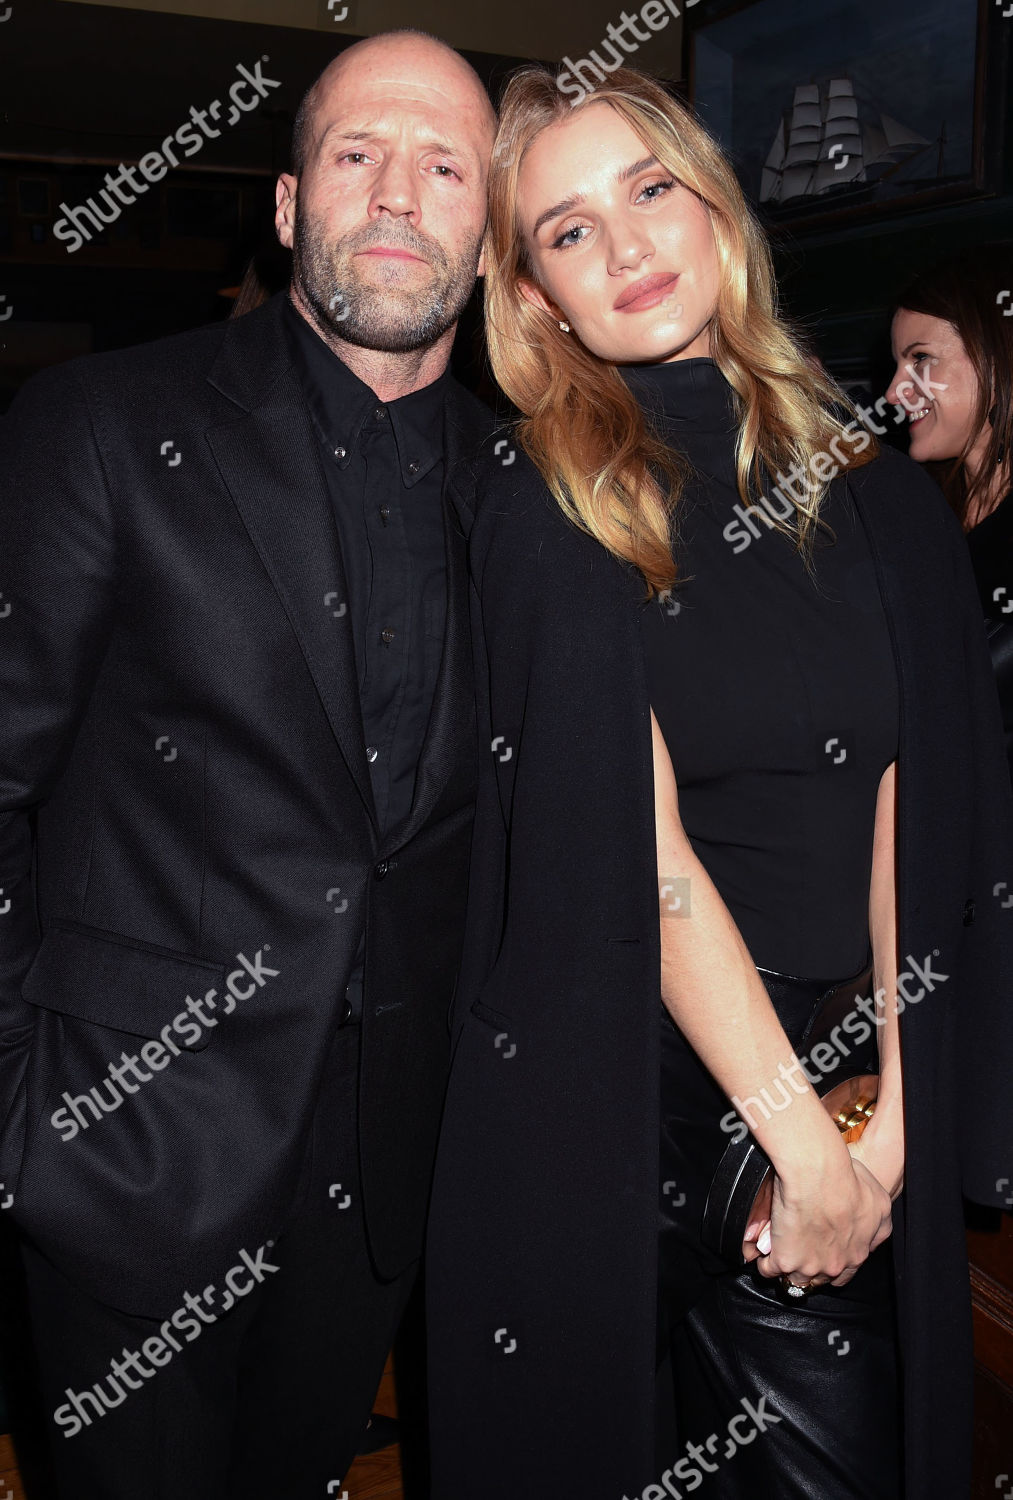 the-gentleman-vip-film-screening-after-party-london-uk-shutterstock-editorial-10491014af.jpg